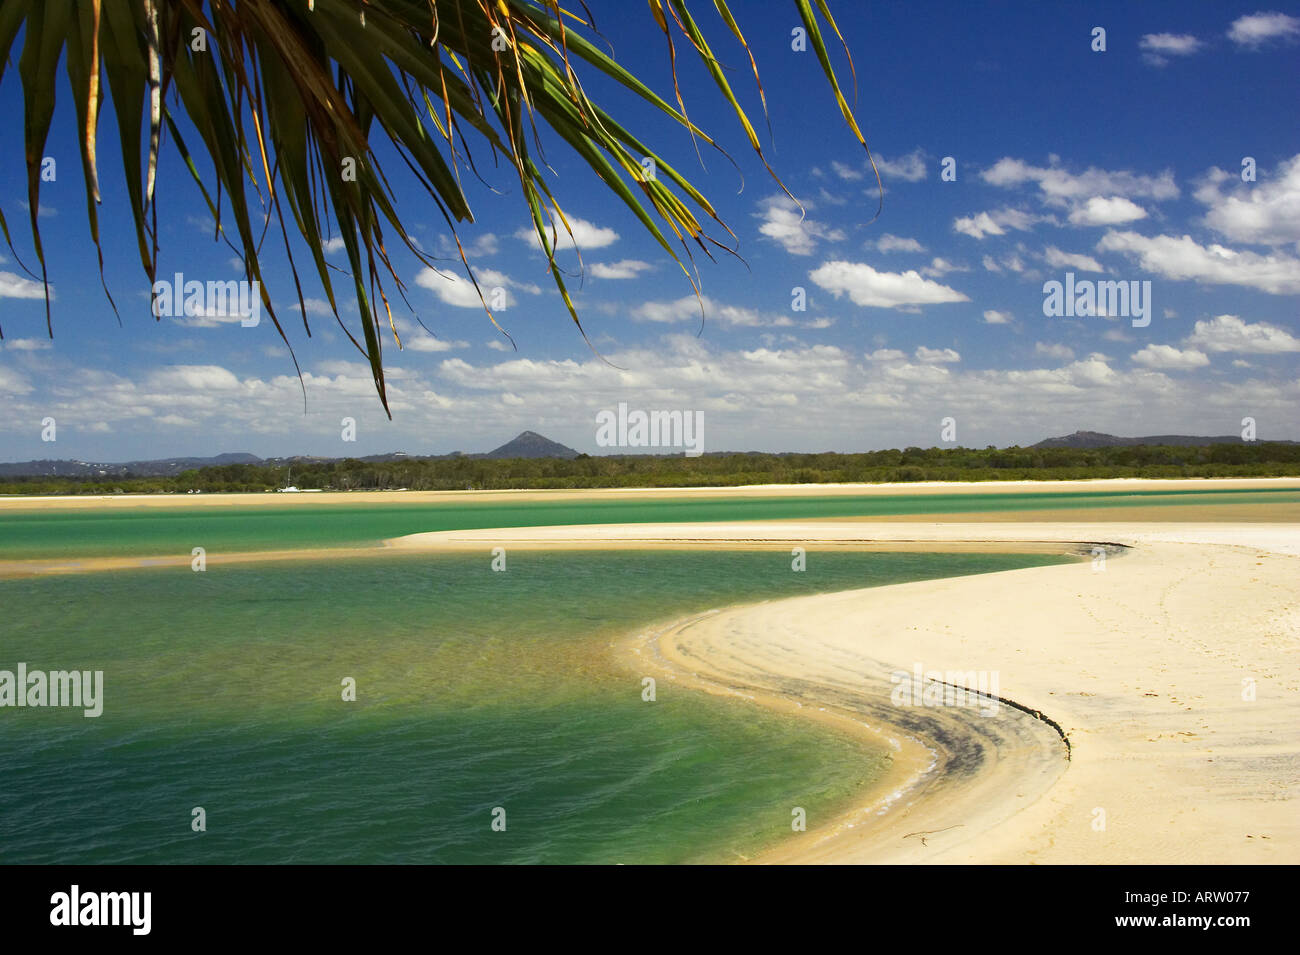 Noosa Inlet Noosa Heads Sunshine Coast Queensland Australien Stockbild